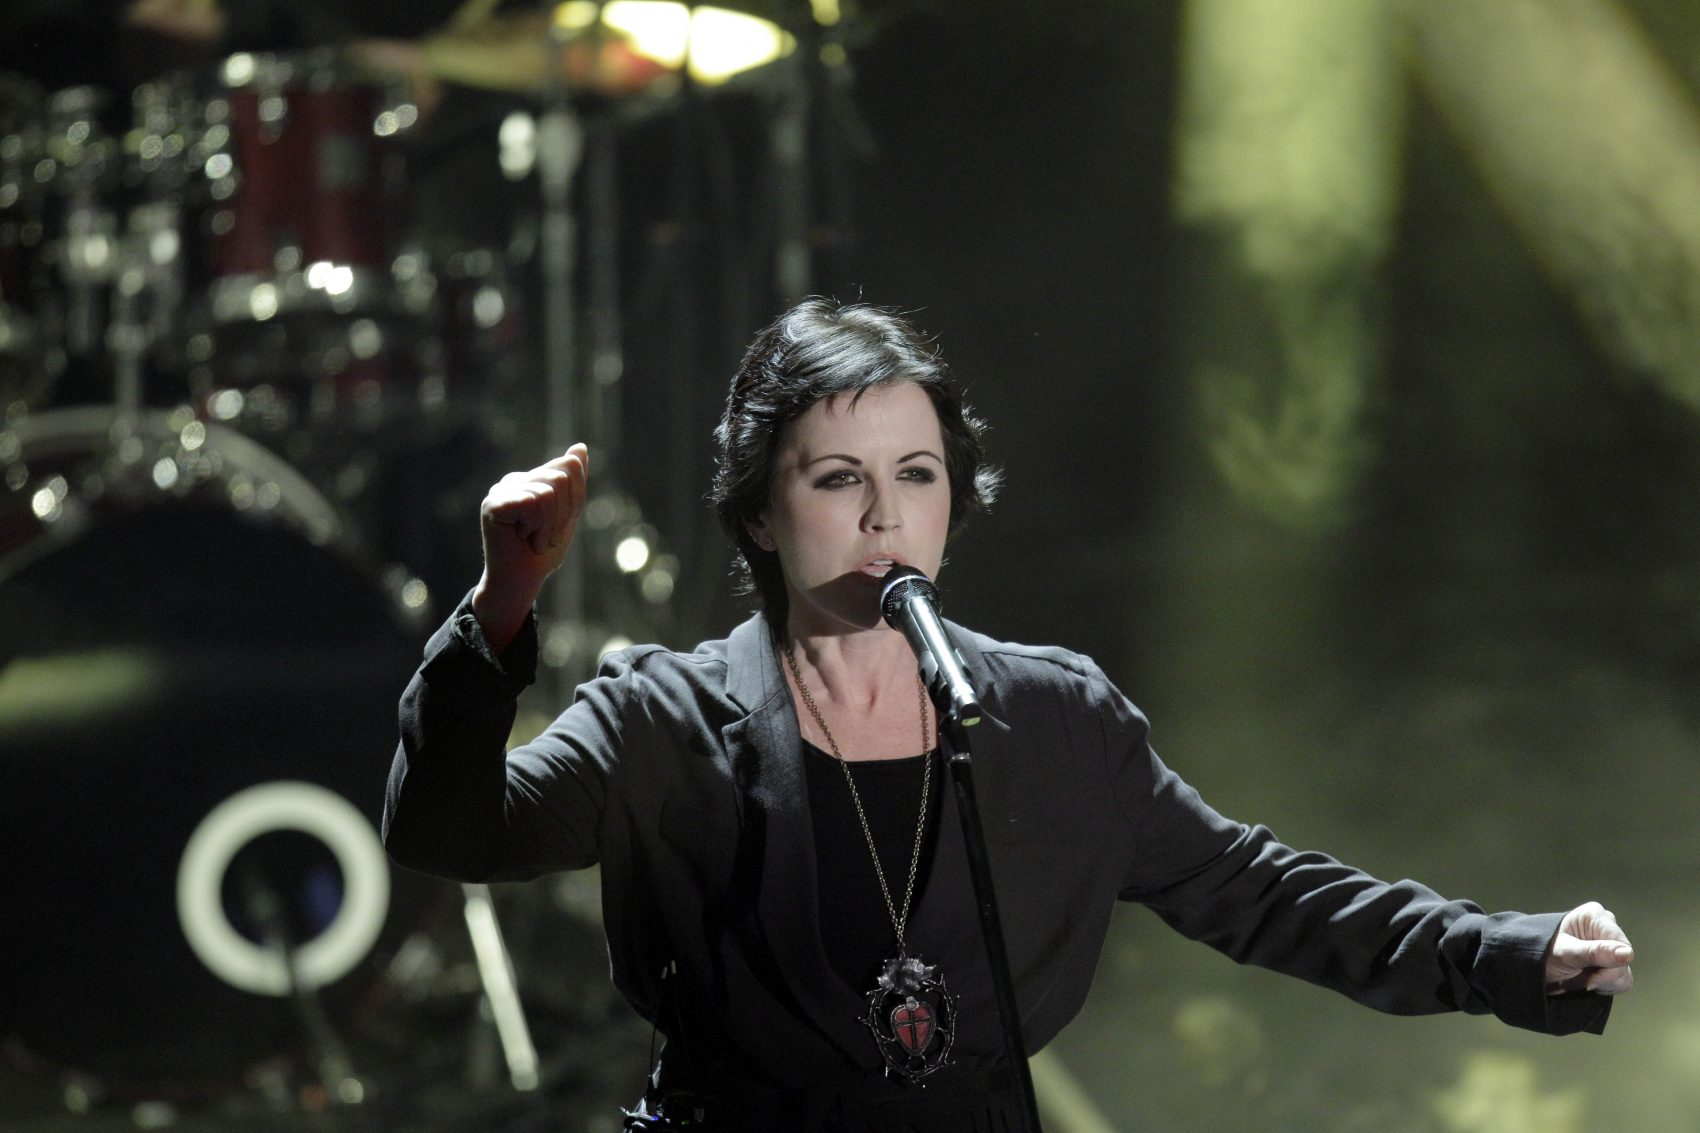 Dolores O'Riordan, former frontwoman of Irish band The Cranberries, performs in Italy on Saturday, Feb. 18, 2012. (Luca Bruno/AP)